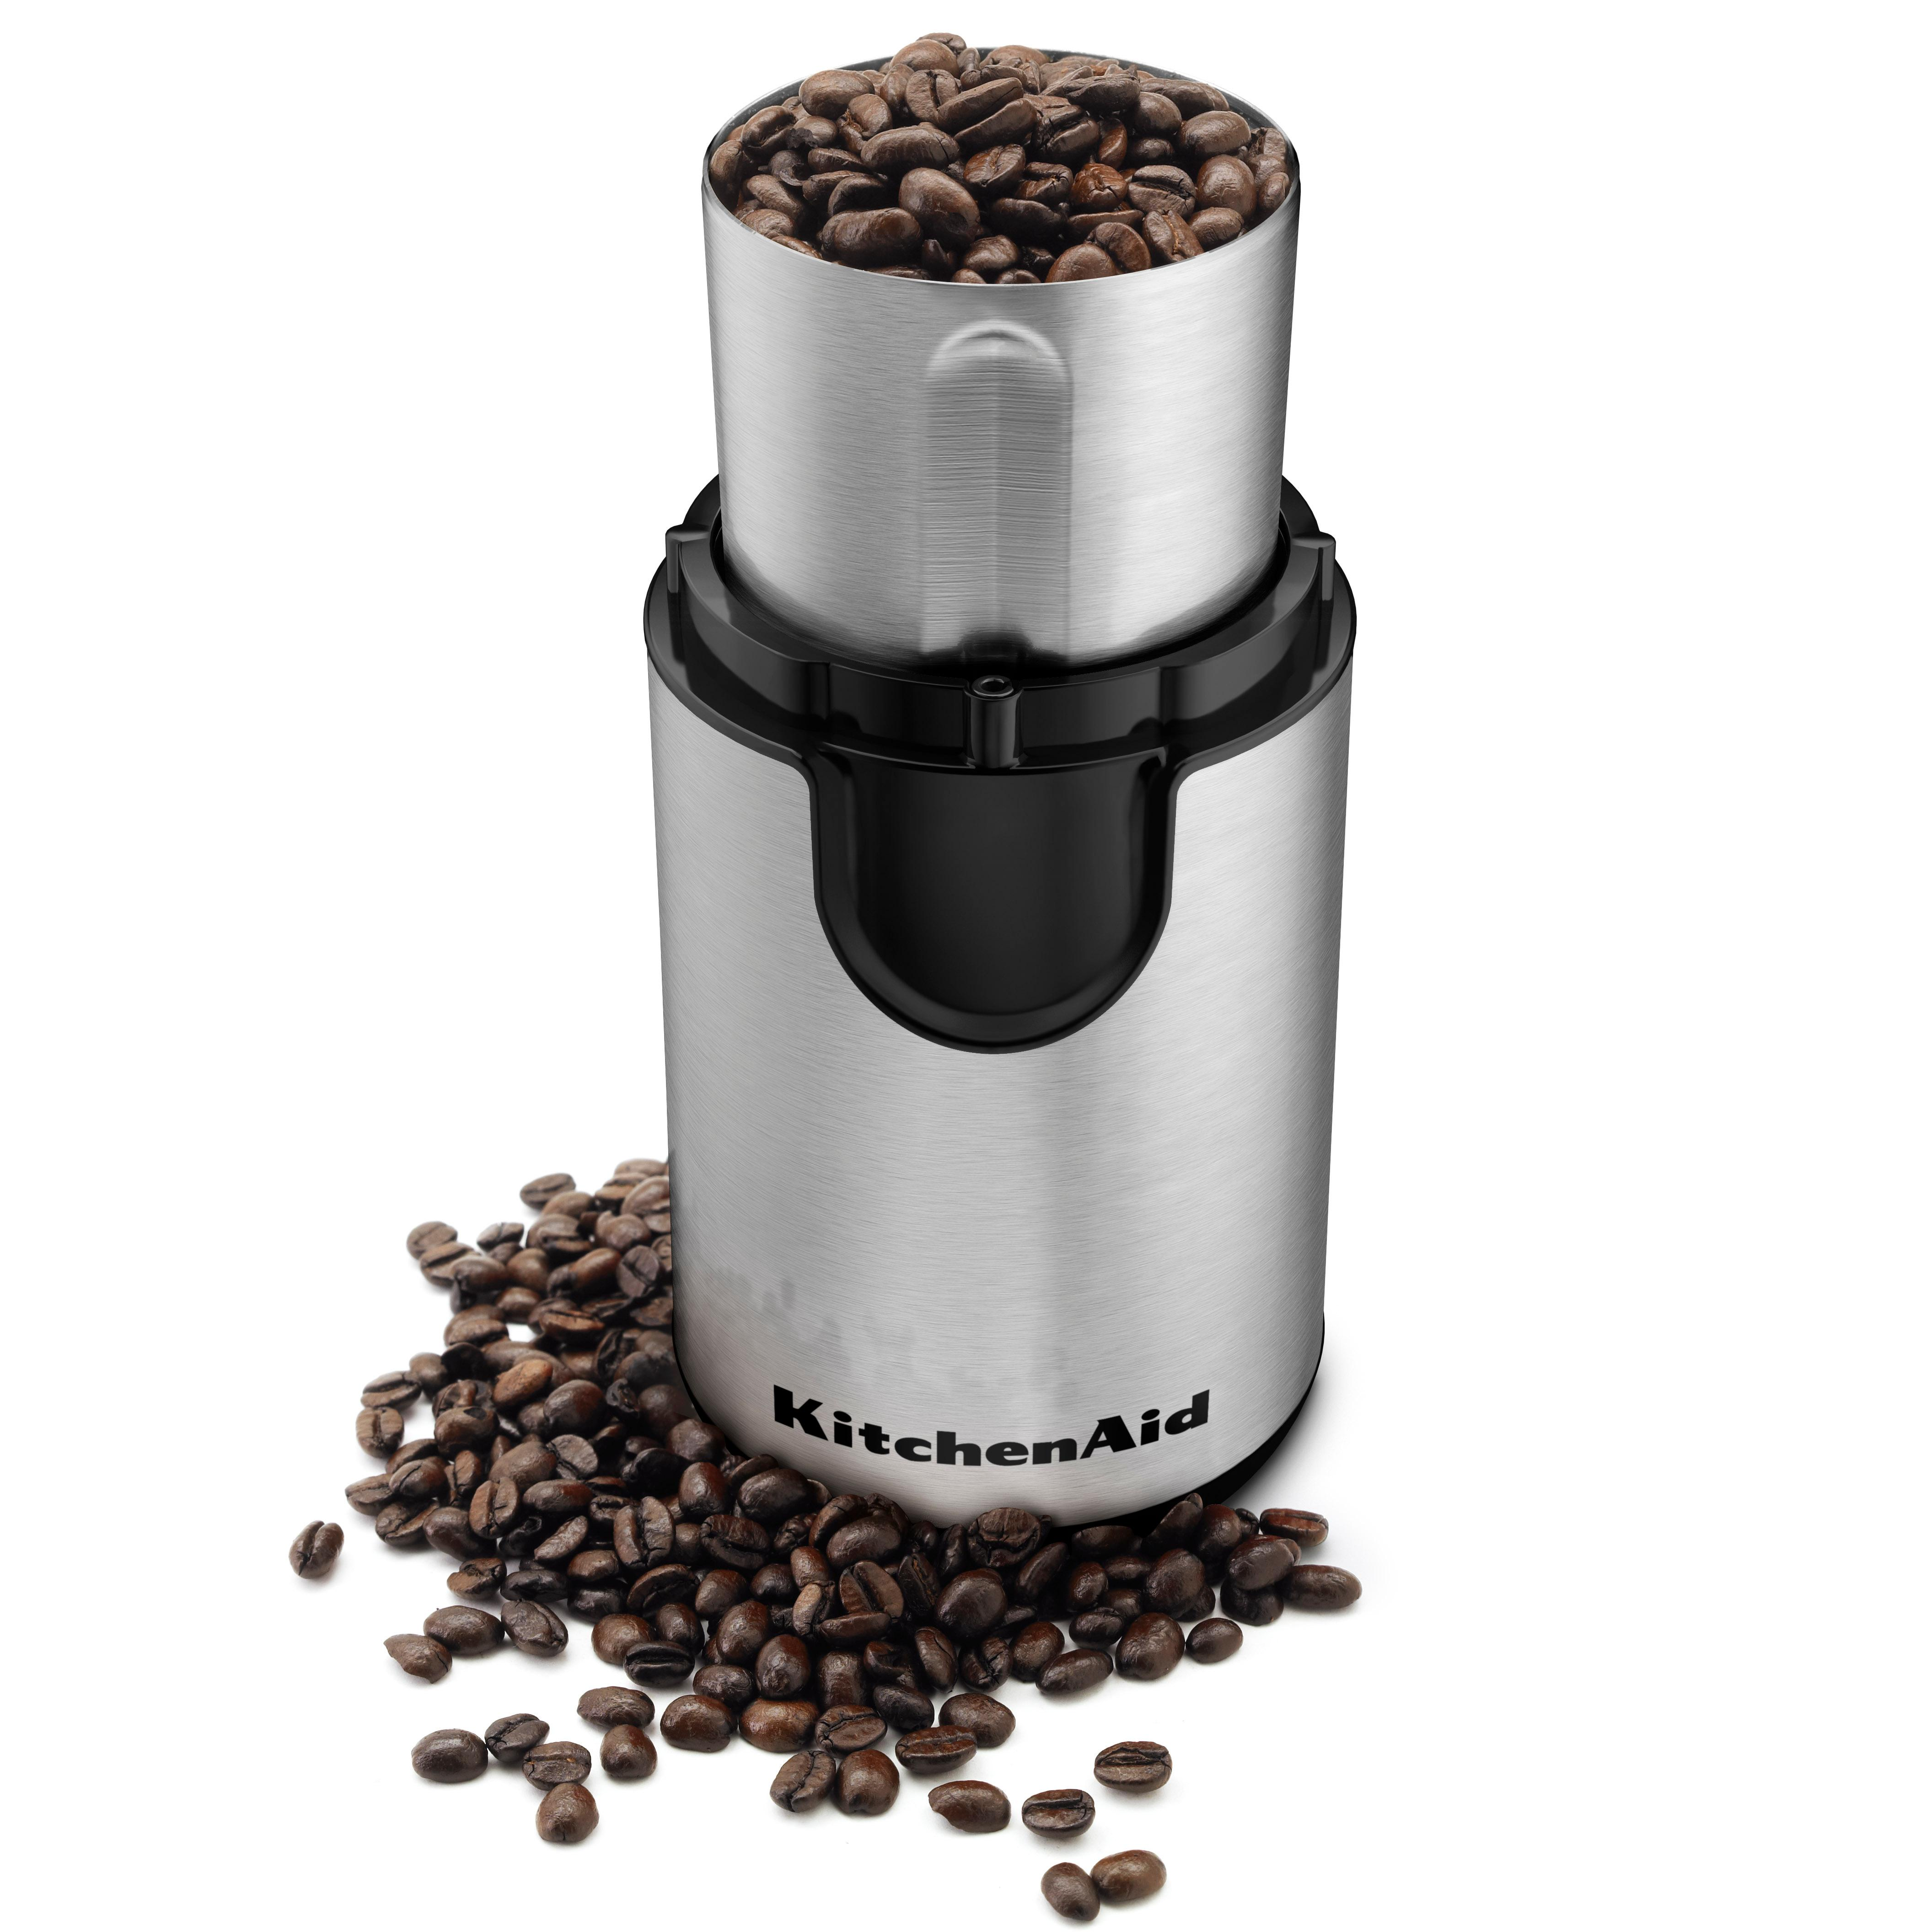 Amazon.com: KitchenAid BCG211OB Blade Coffee and Spice Grinder Combo Pack - Onyx Black: Coffee ...